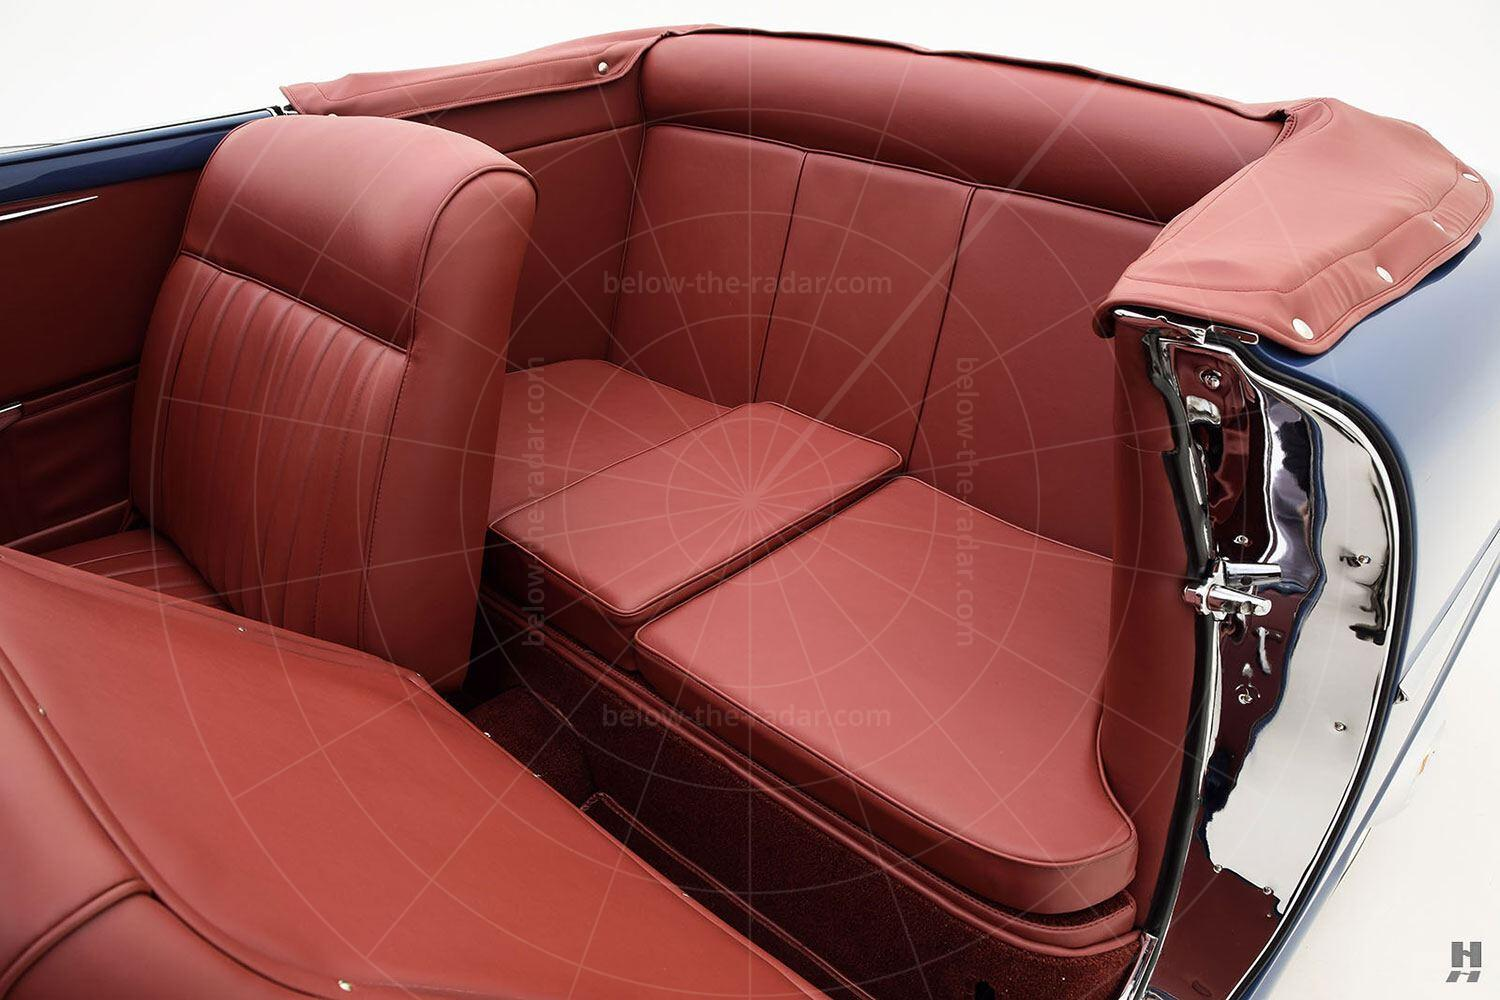 Fiat 1100 cabriolet by Allemano - rear seat Pic: Hyman Ltd | Fiat 1100 cabriolet by Allemano - rear seat